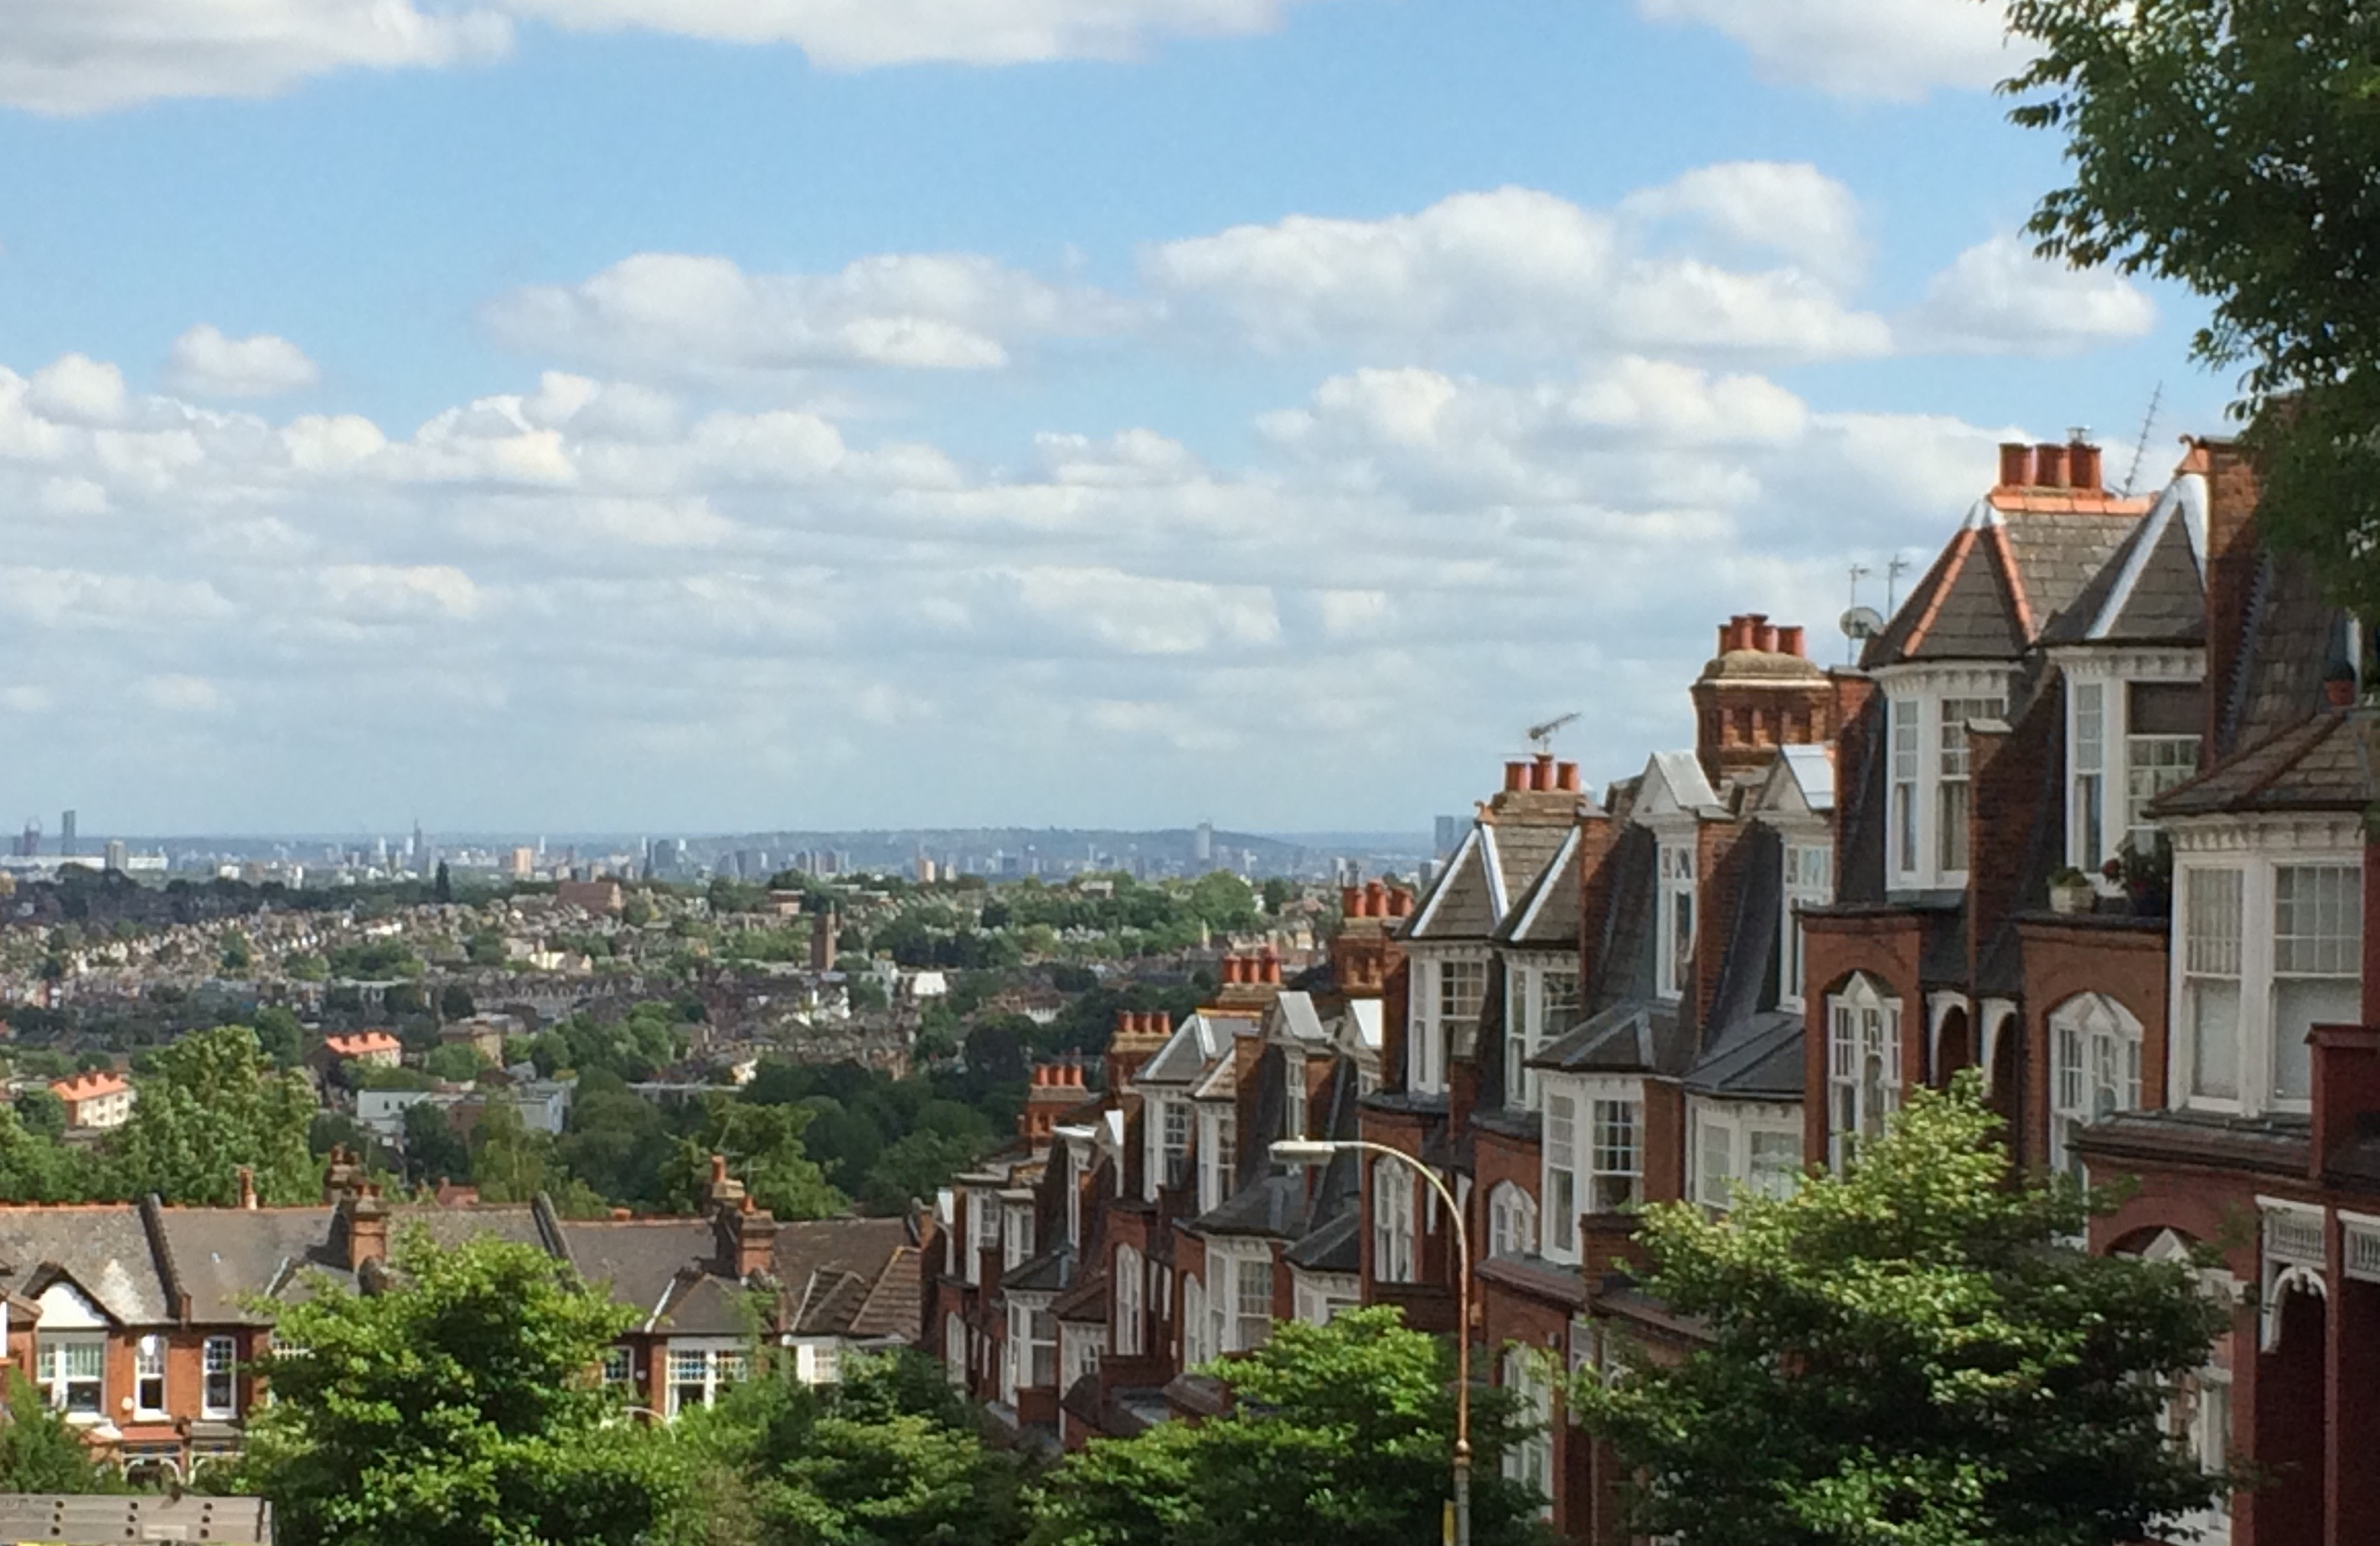 Traditional 03a Jimmy furthermore Barely Lethal Movie Review Hidden In Plain Sight as well Slumdog Family Films  e Home further Disneys Mpomsters Inc 3d additionally London Photo The View From Muswell Hill. on oscar for best animated feature